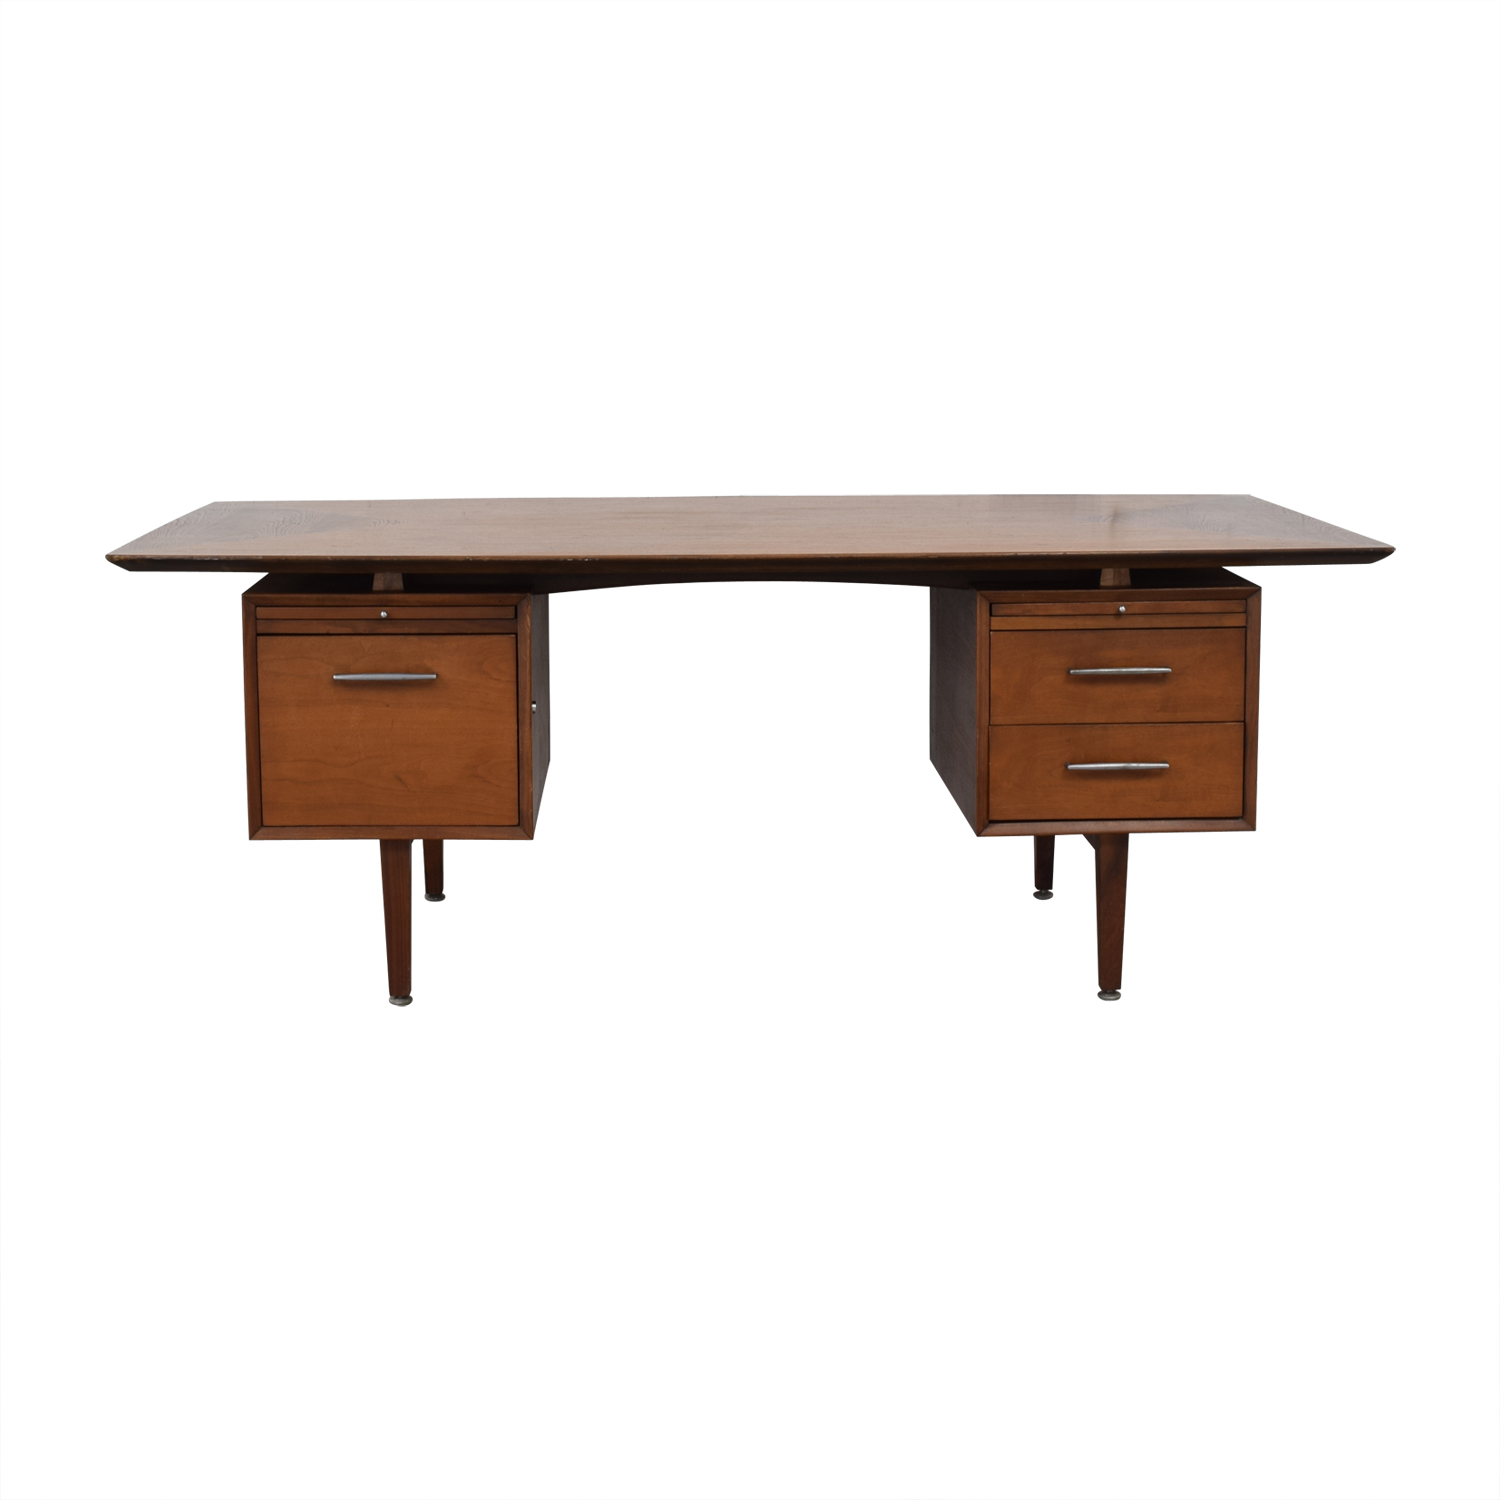 82 Off Mid Century Modern Desk Tables